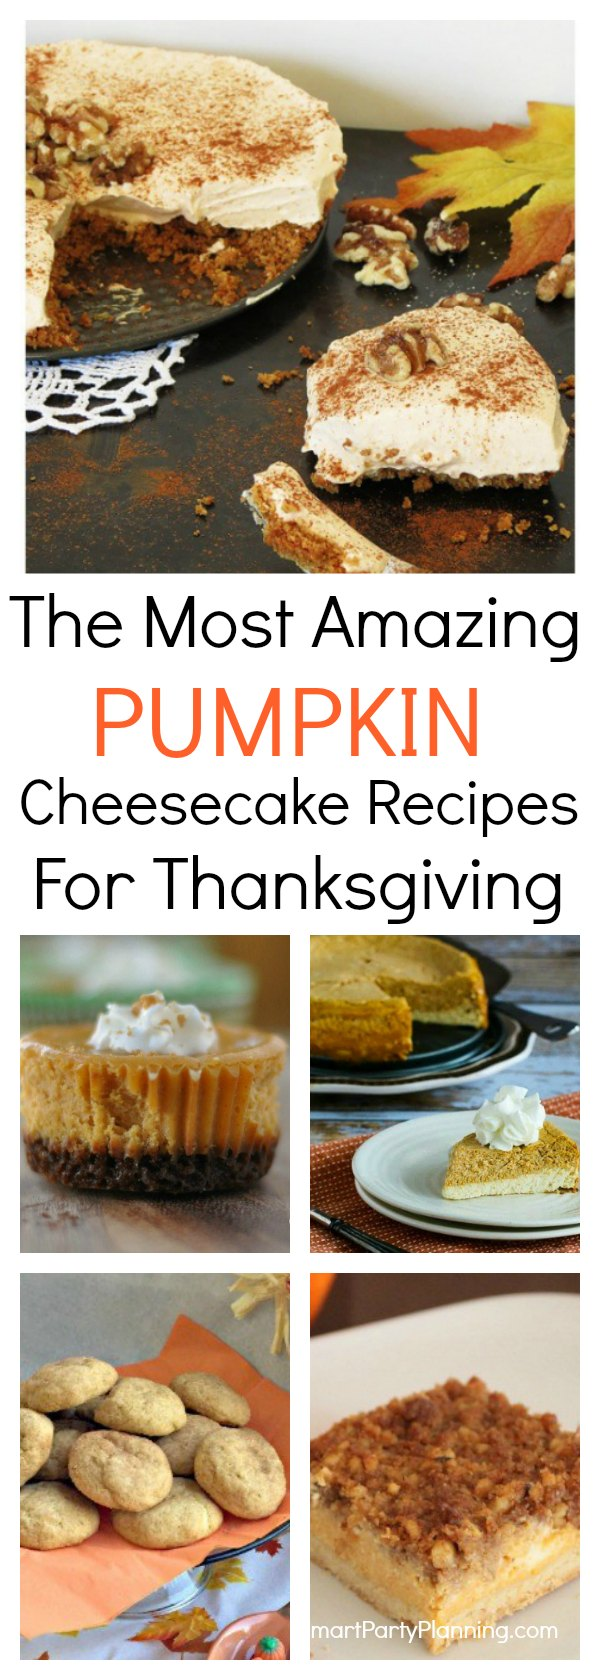 The Most Amazing Pumpkin Cheesecake Recipes